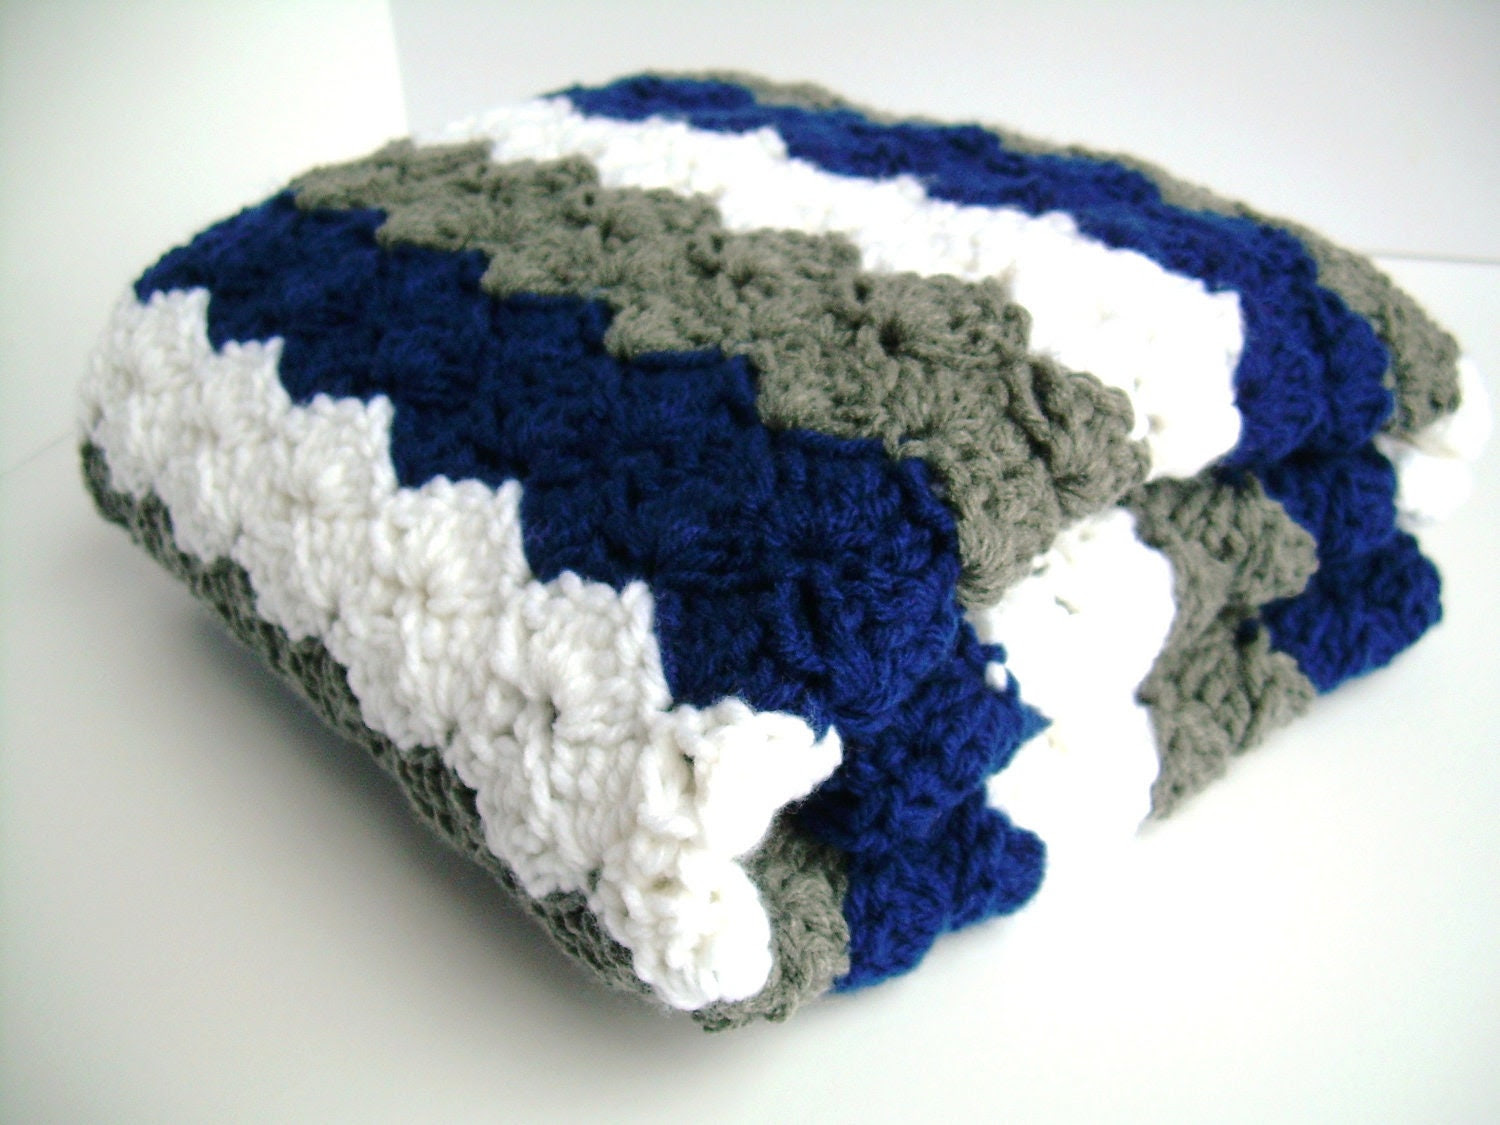 Baby Blanket, Blue, White, and Grey Crochet Blanket, stroller / travel size - Jadescloset